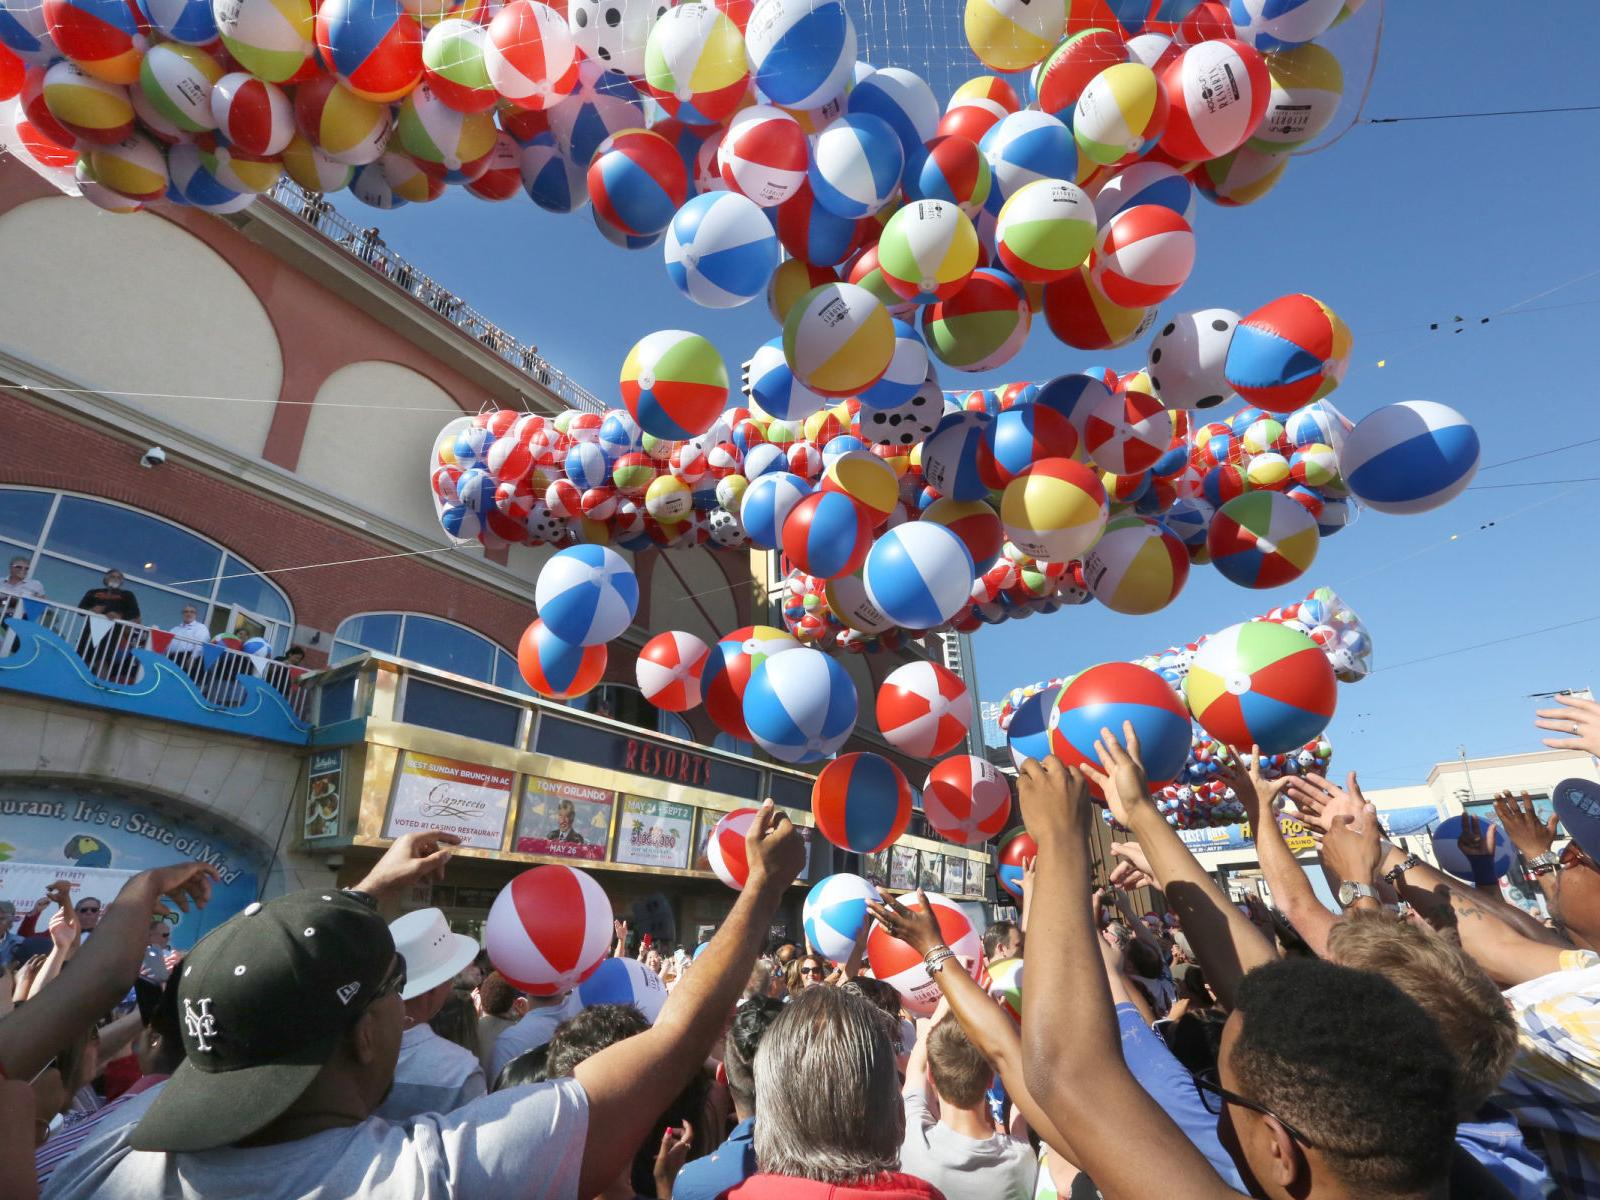 PHOTOS from the beach ball drop at Resorts in Atlantic City